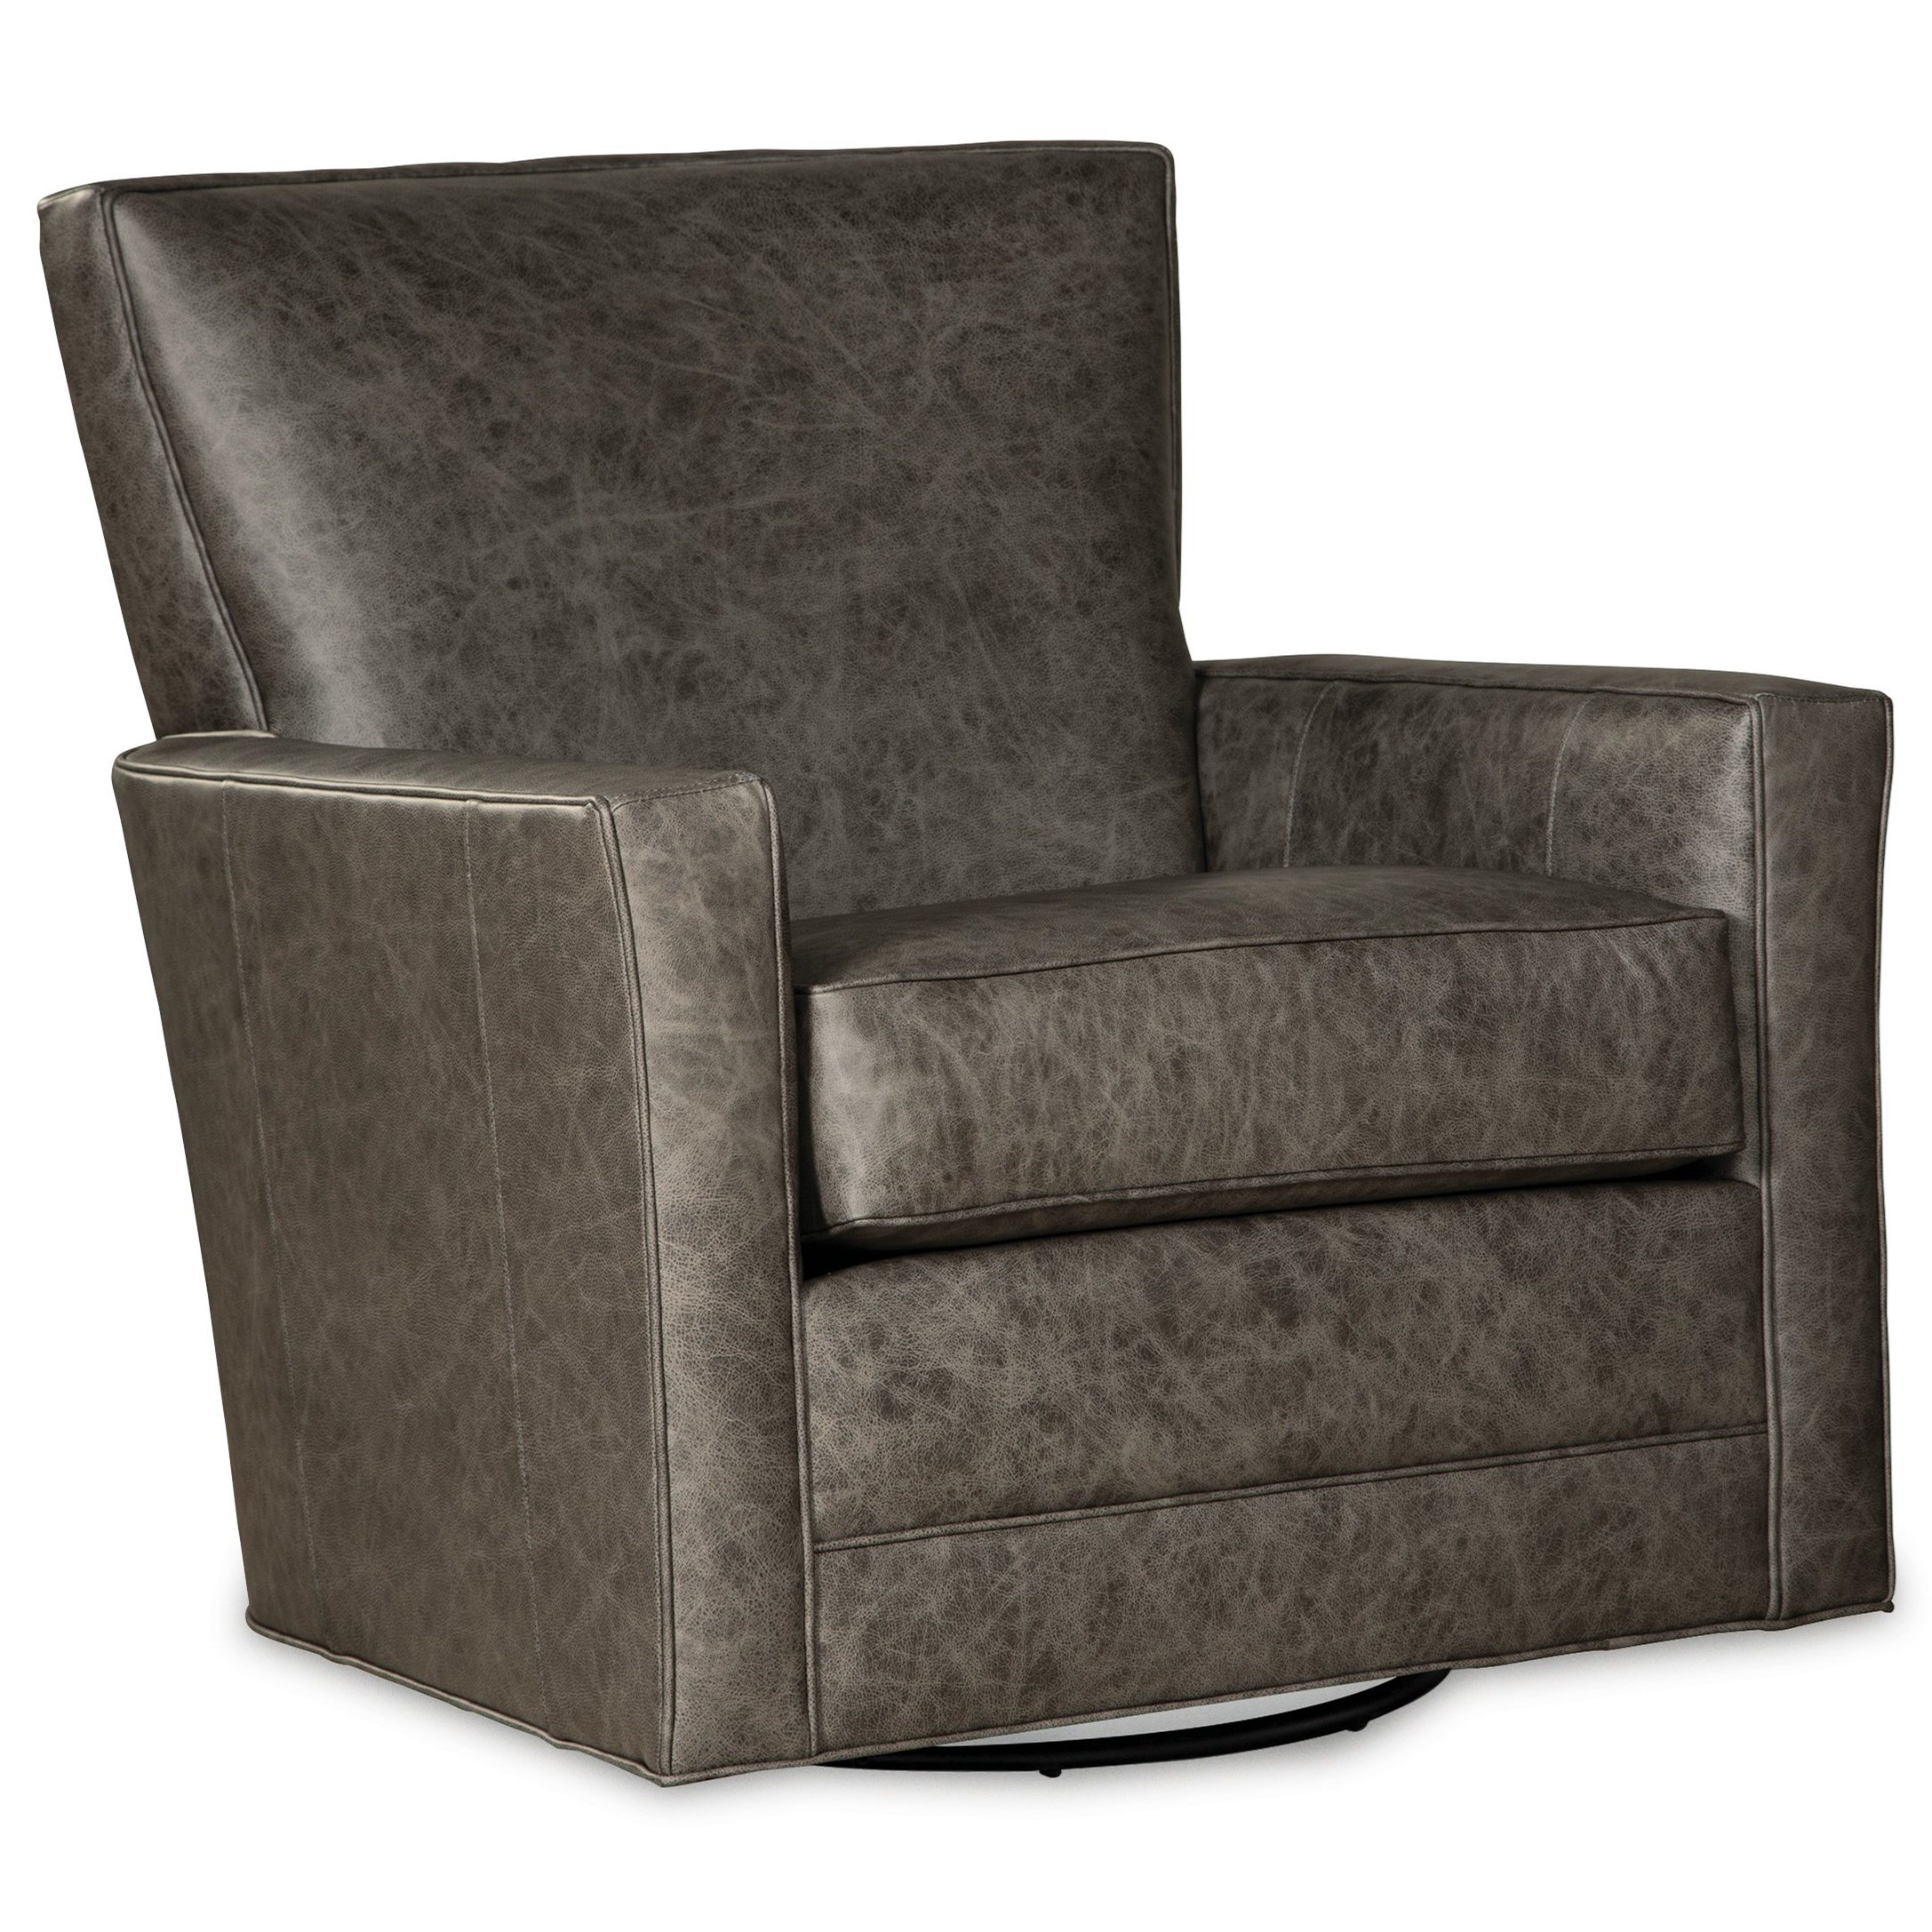 L055610 Swivel Glider Chair by Craftmaster at Baer's Furniture